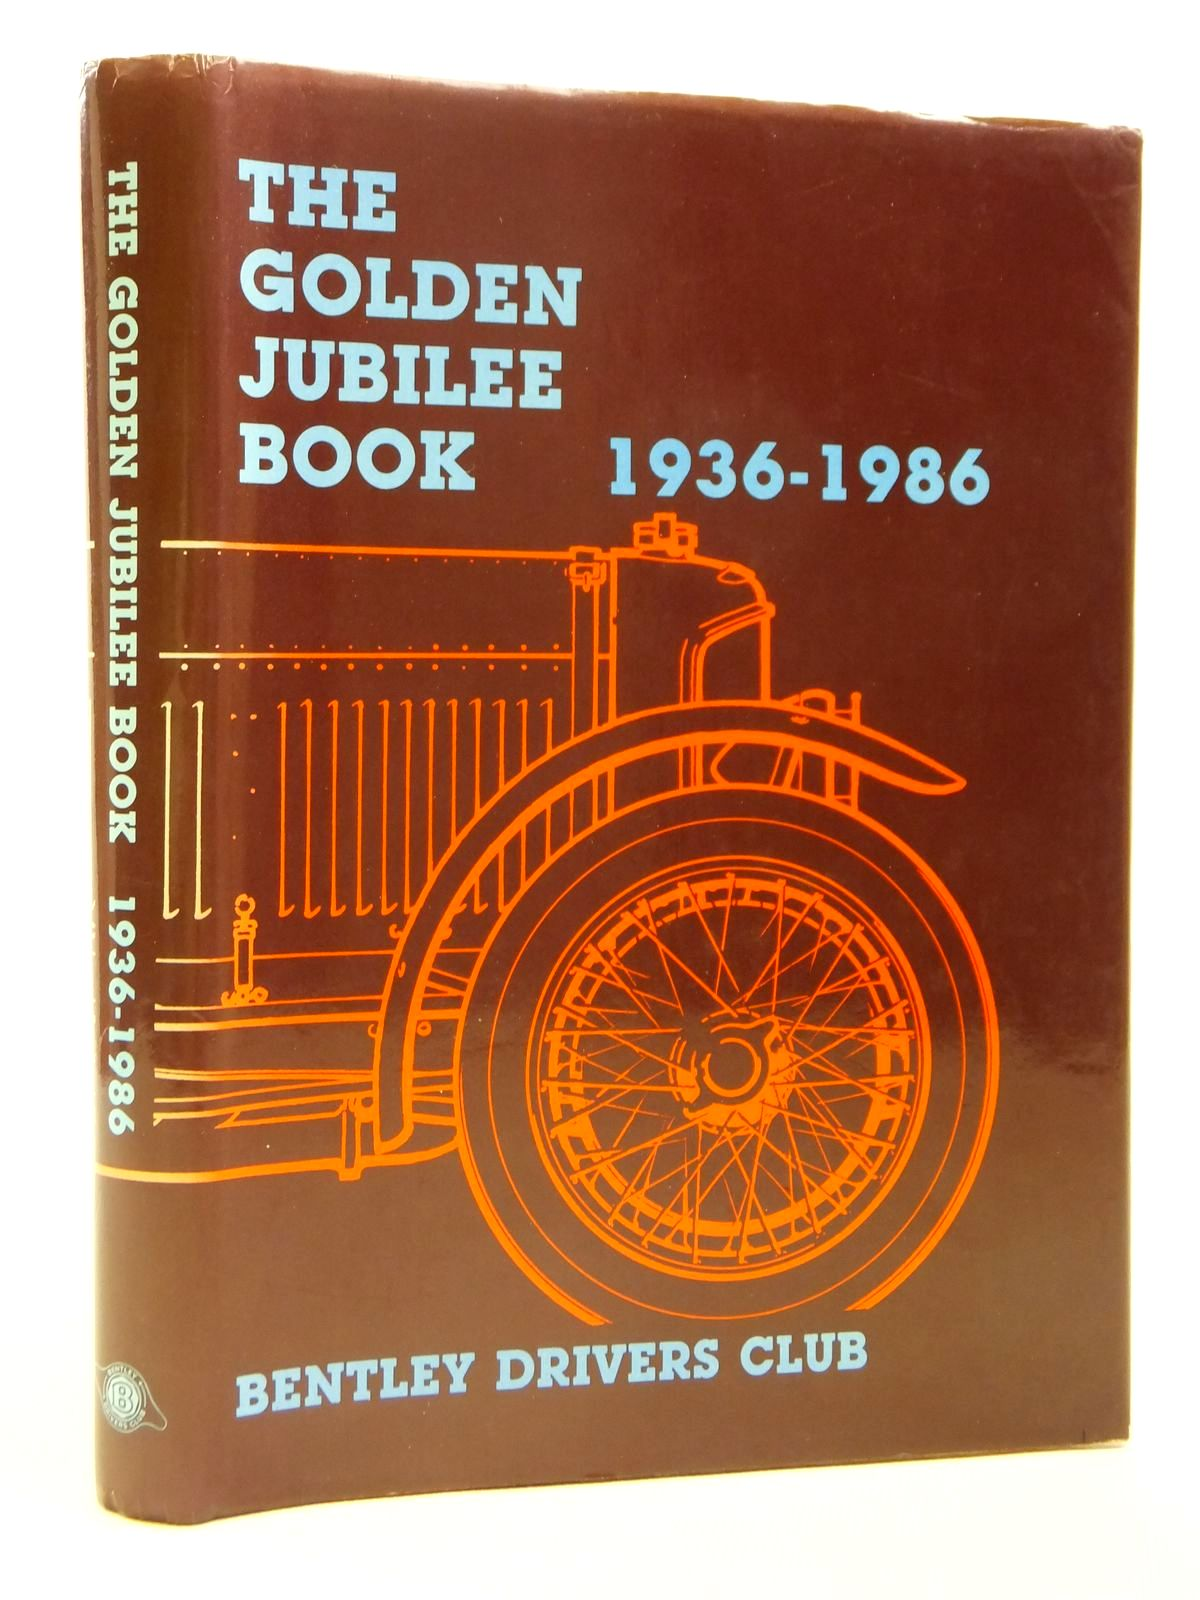 Photo of THE GOLDEN JUBILEE BOOK 1936-1986 written by Nutter, John published by Bentley Drivers Club Ltd. (STOCK CODE: 1608130)  for sale by Stella & Rose's Books